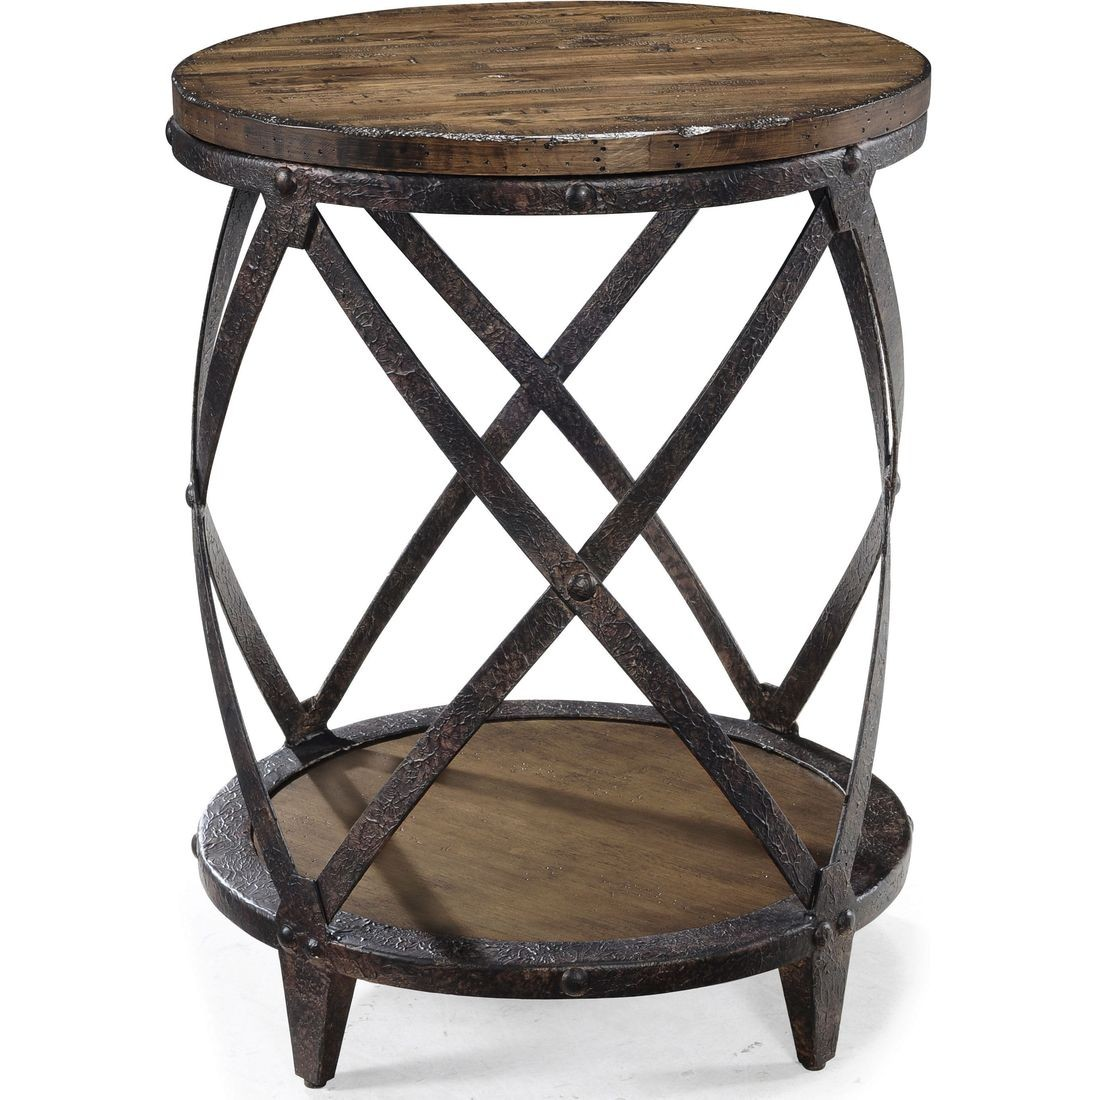 magnussen pinebrook round accent table natural pine wood custom hybrid black and gold decorations target shelf lamp inch polyester tablecloth trestle with chairs big lots dresser